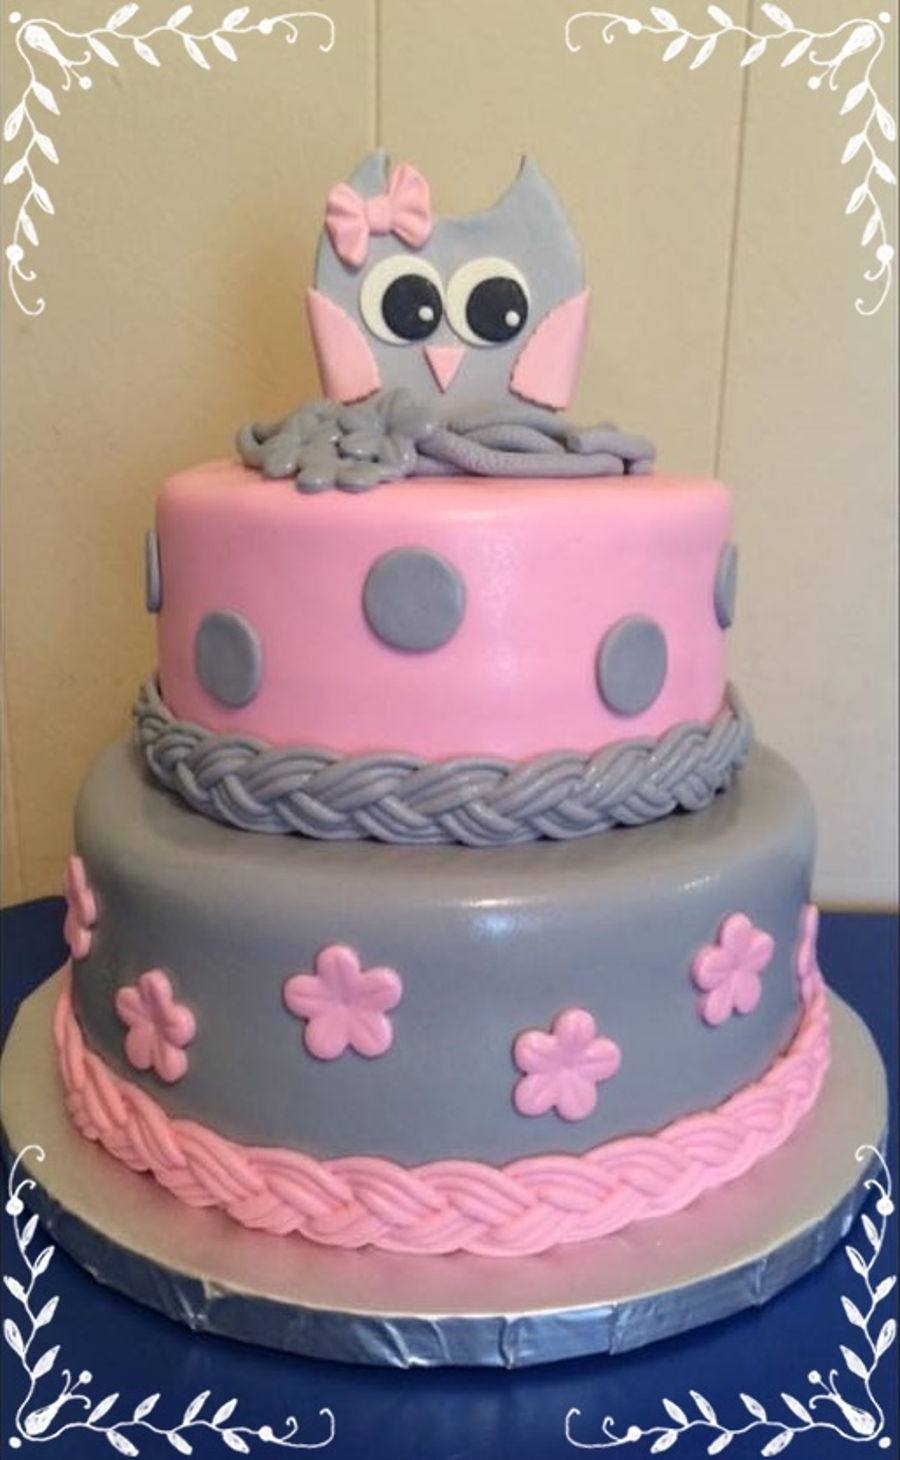 Pink u0026 Gray Owl Baby Shower on Cake Central : baby shower cake decorating ideas - www.pureclipart.com